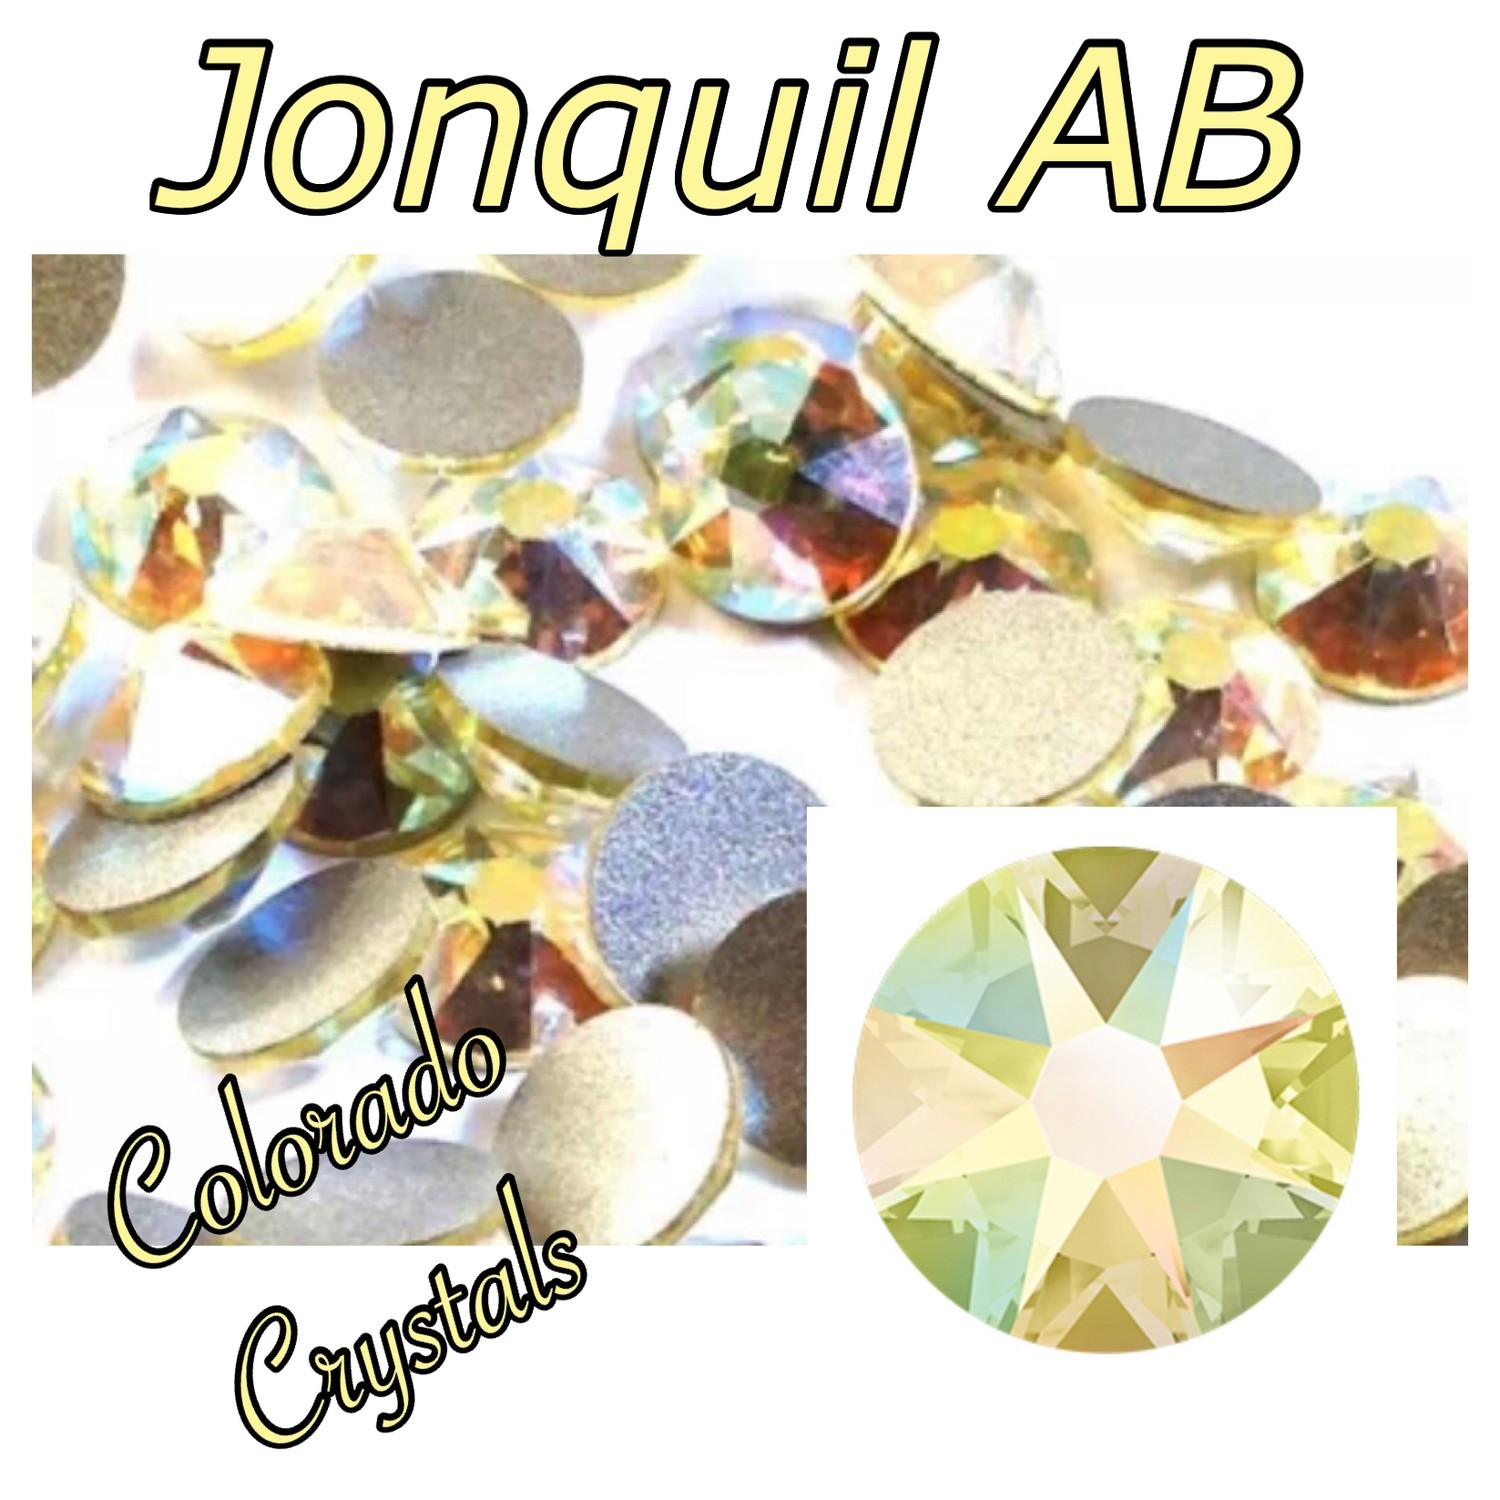 Jonquil AB 20ss 2088 Limited